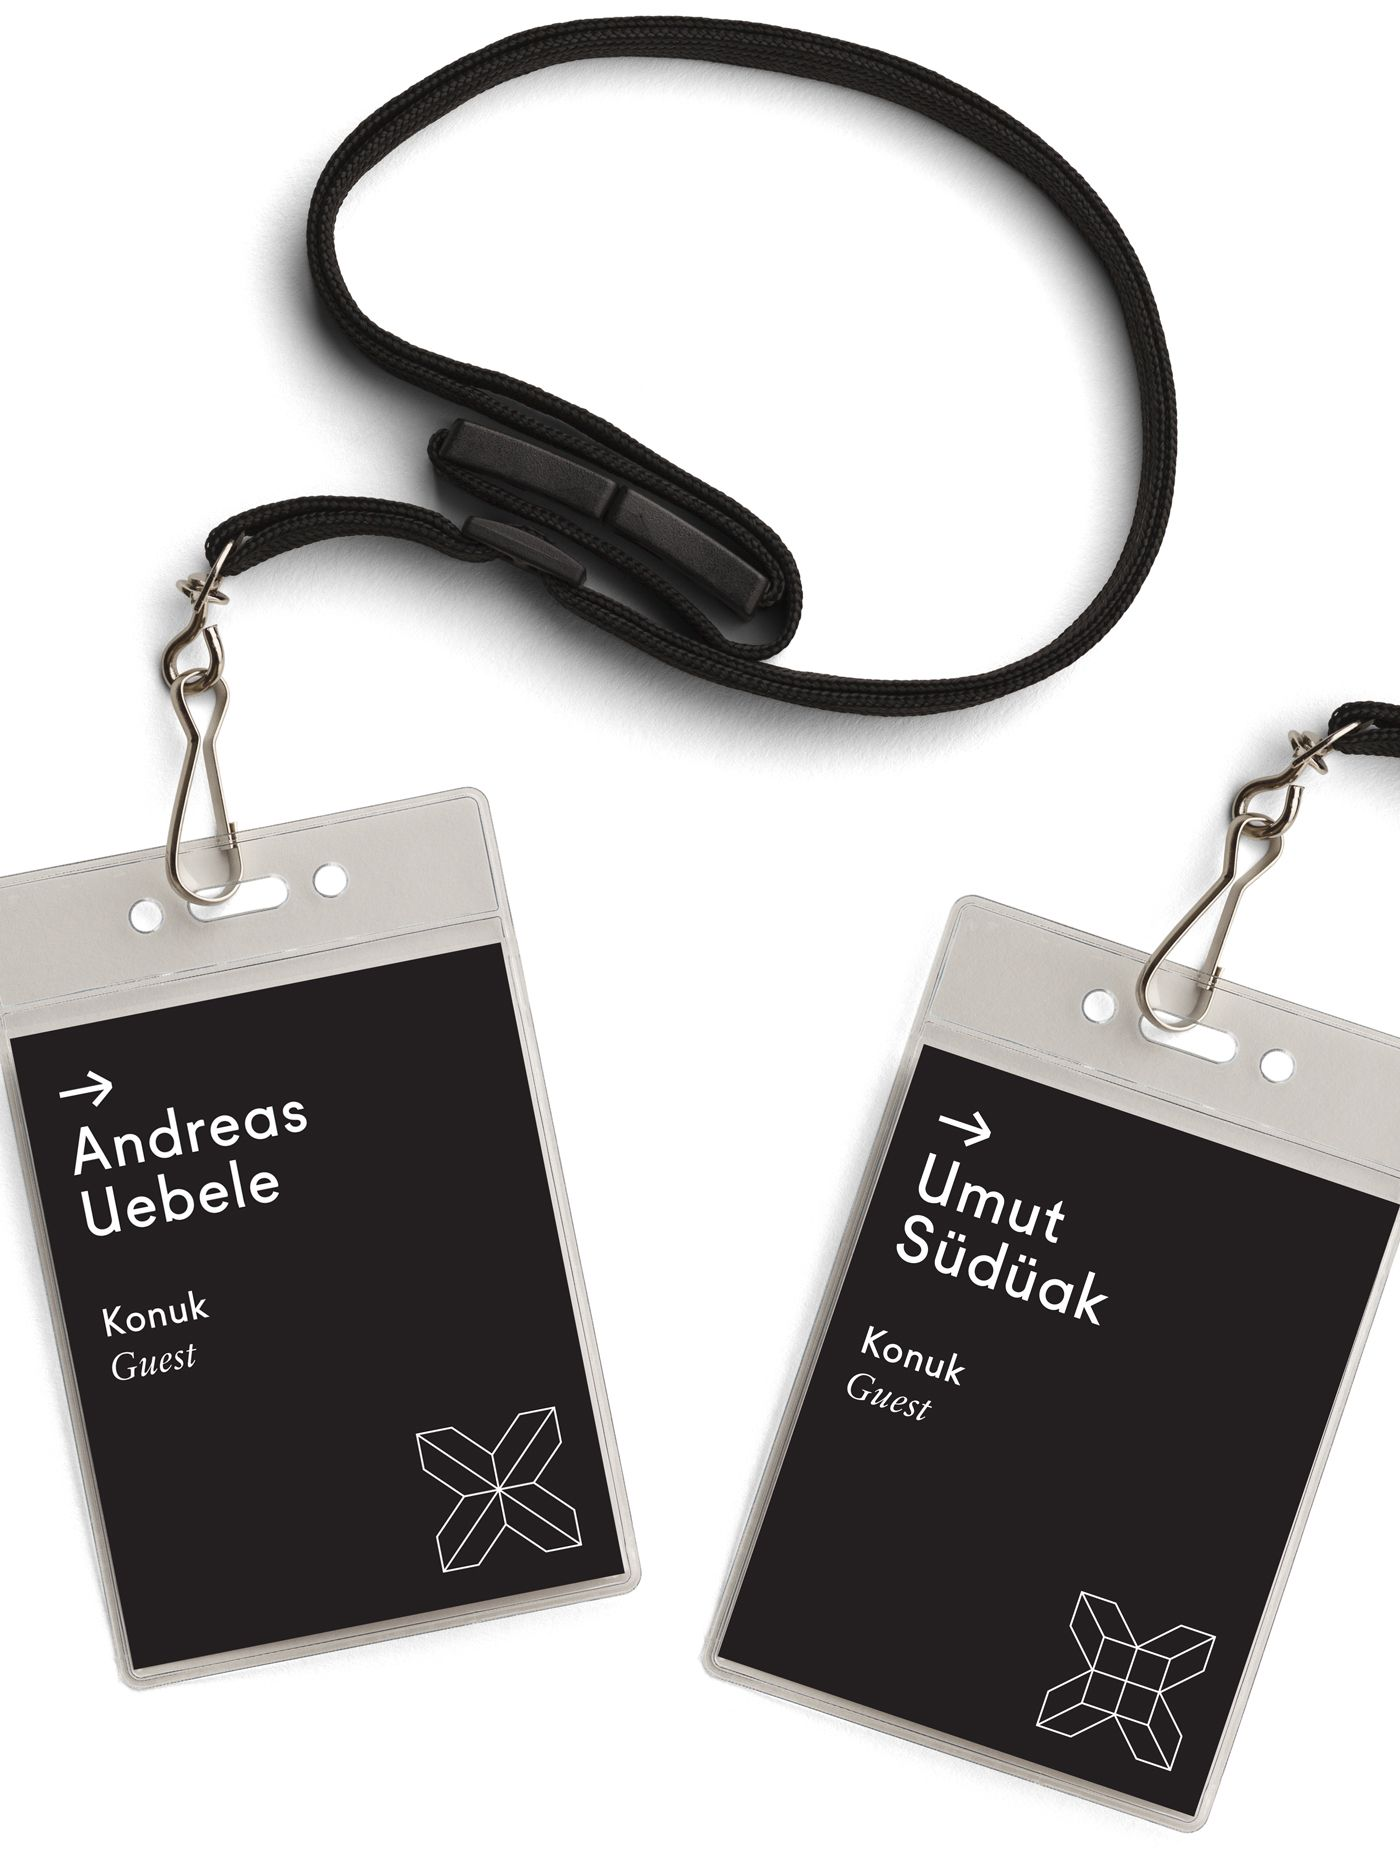 event name tag template - passes mockup security crew tag tags pinterest